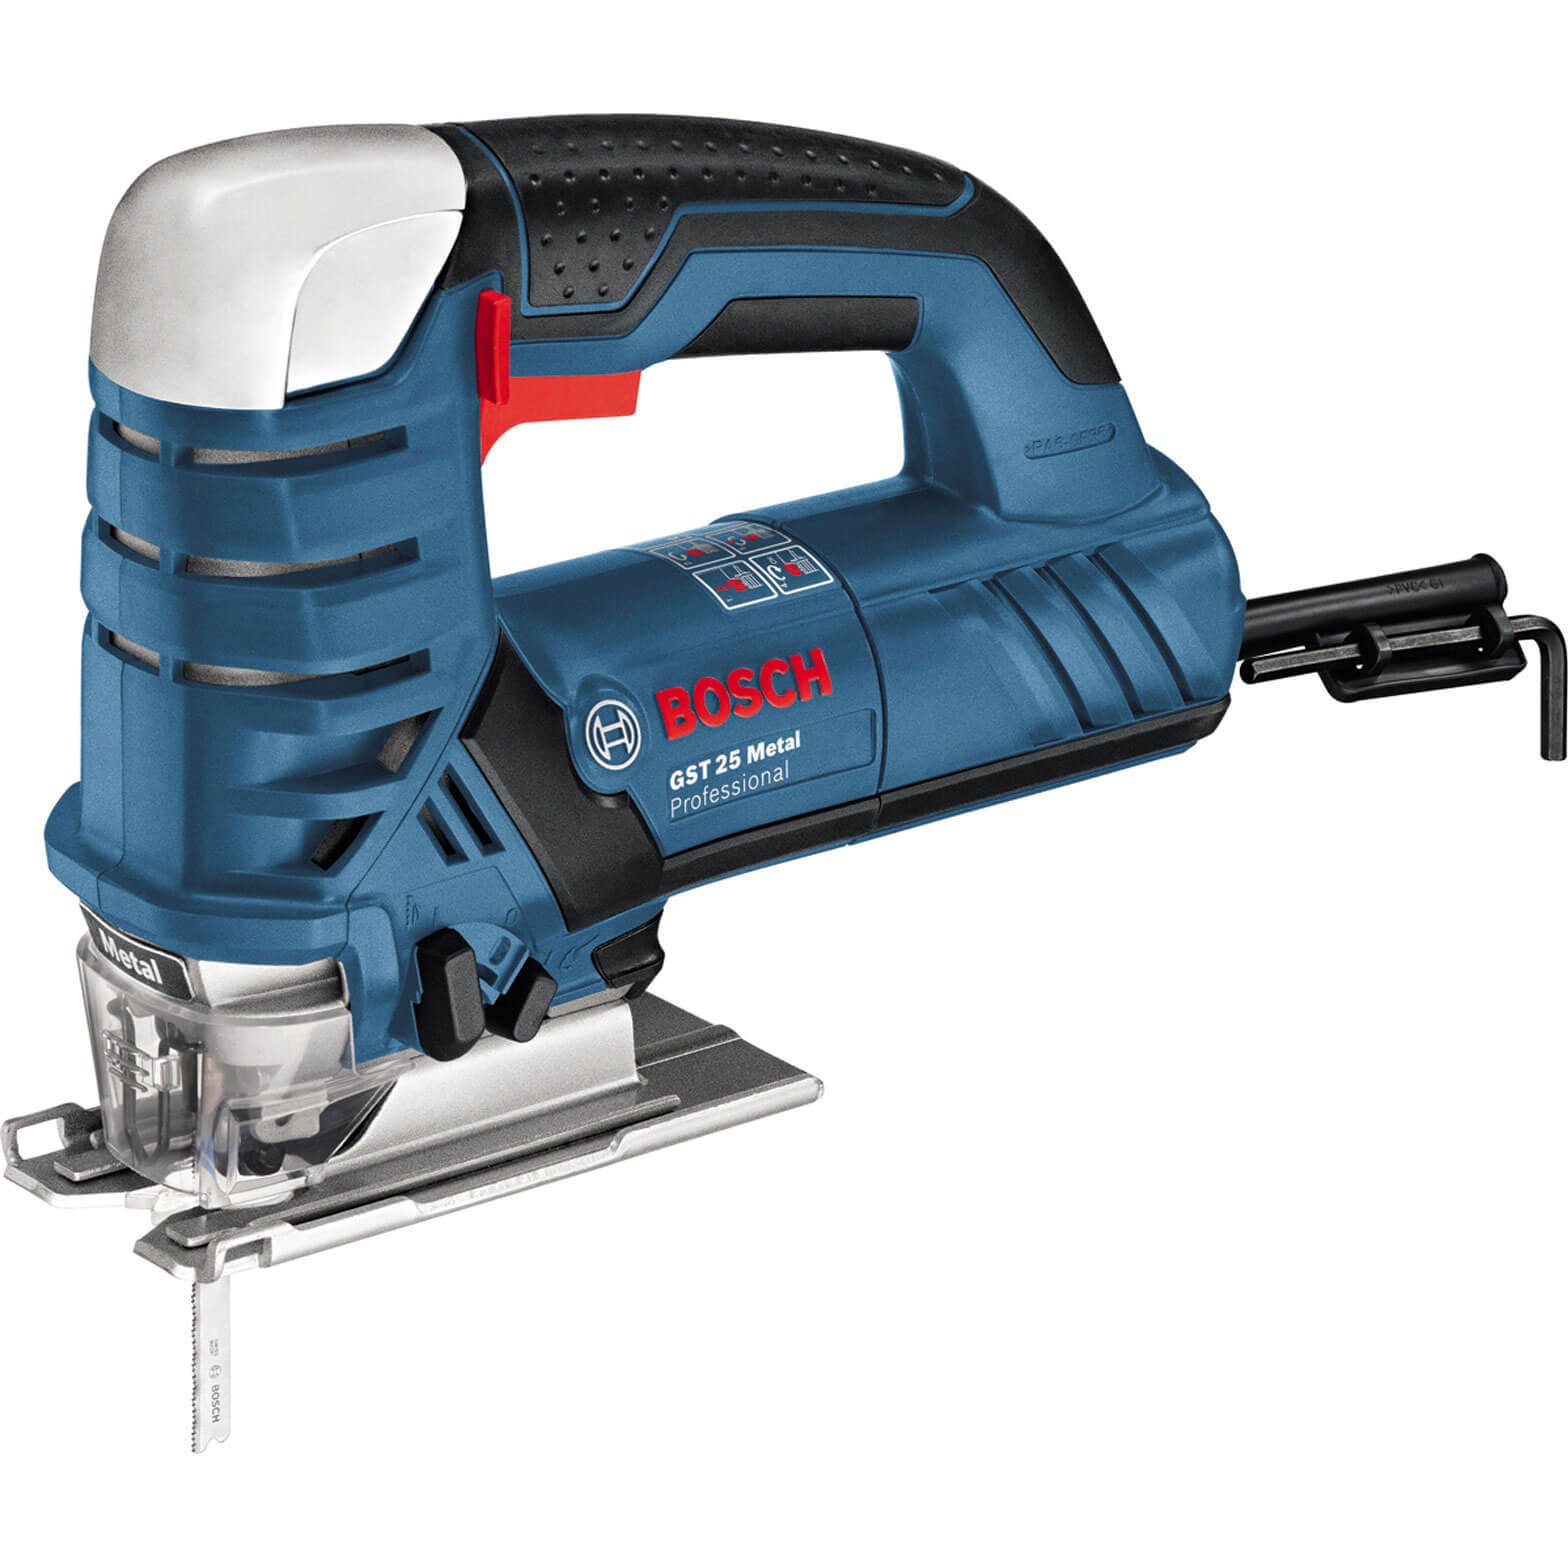 Bosch GST 25M Professional Metal Cutting Electric Jigsaw 670w 110v